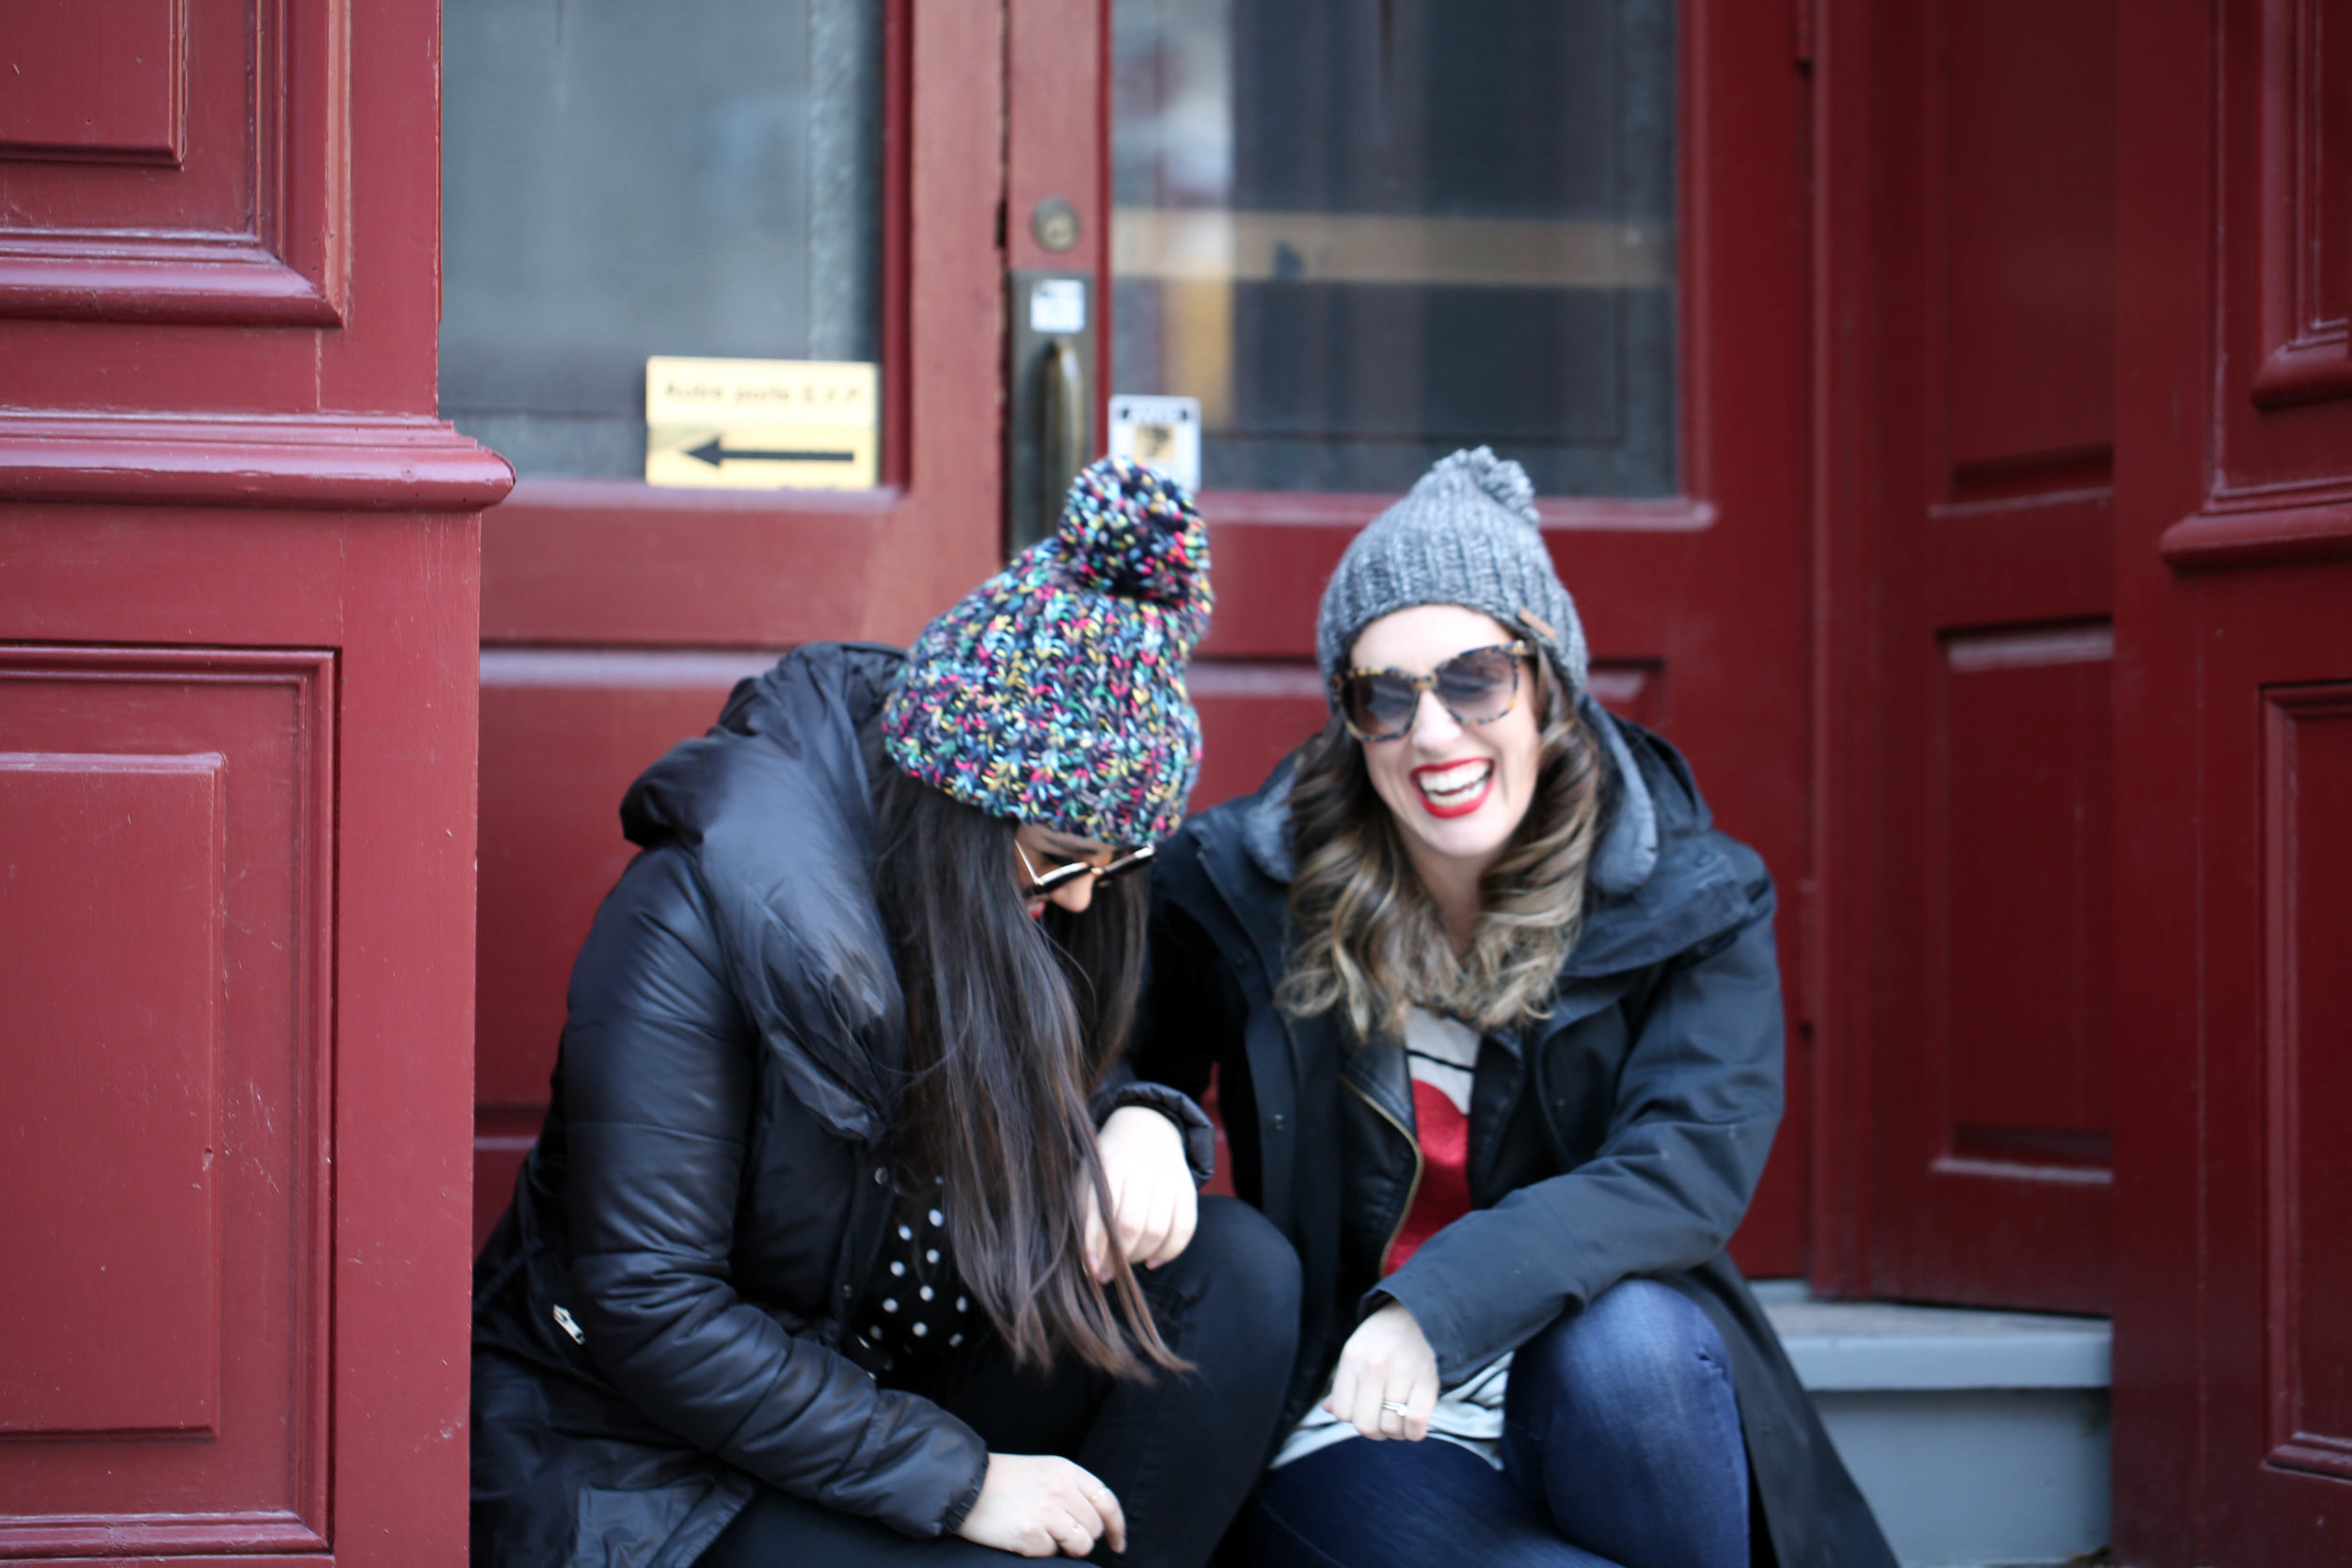 mom, style, girlfriends, winter style, womens style, mom fashion, keeping your style, mommy fashion,